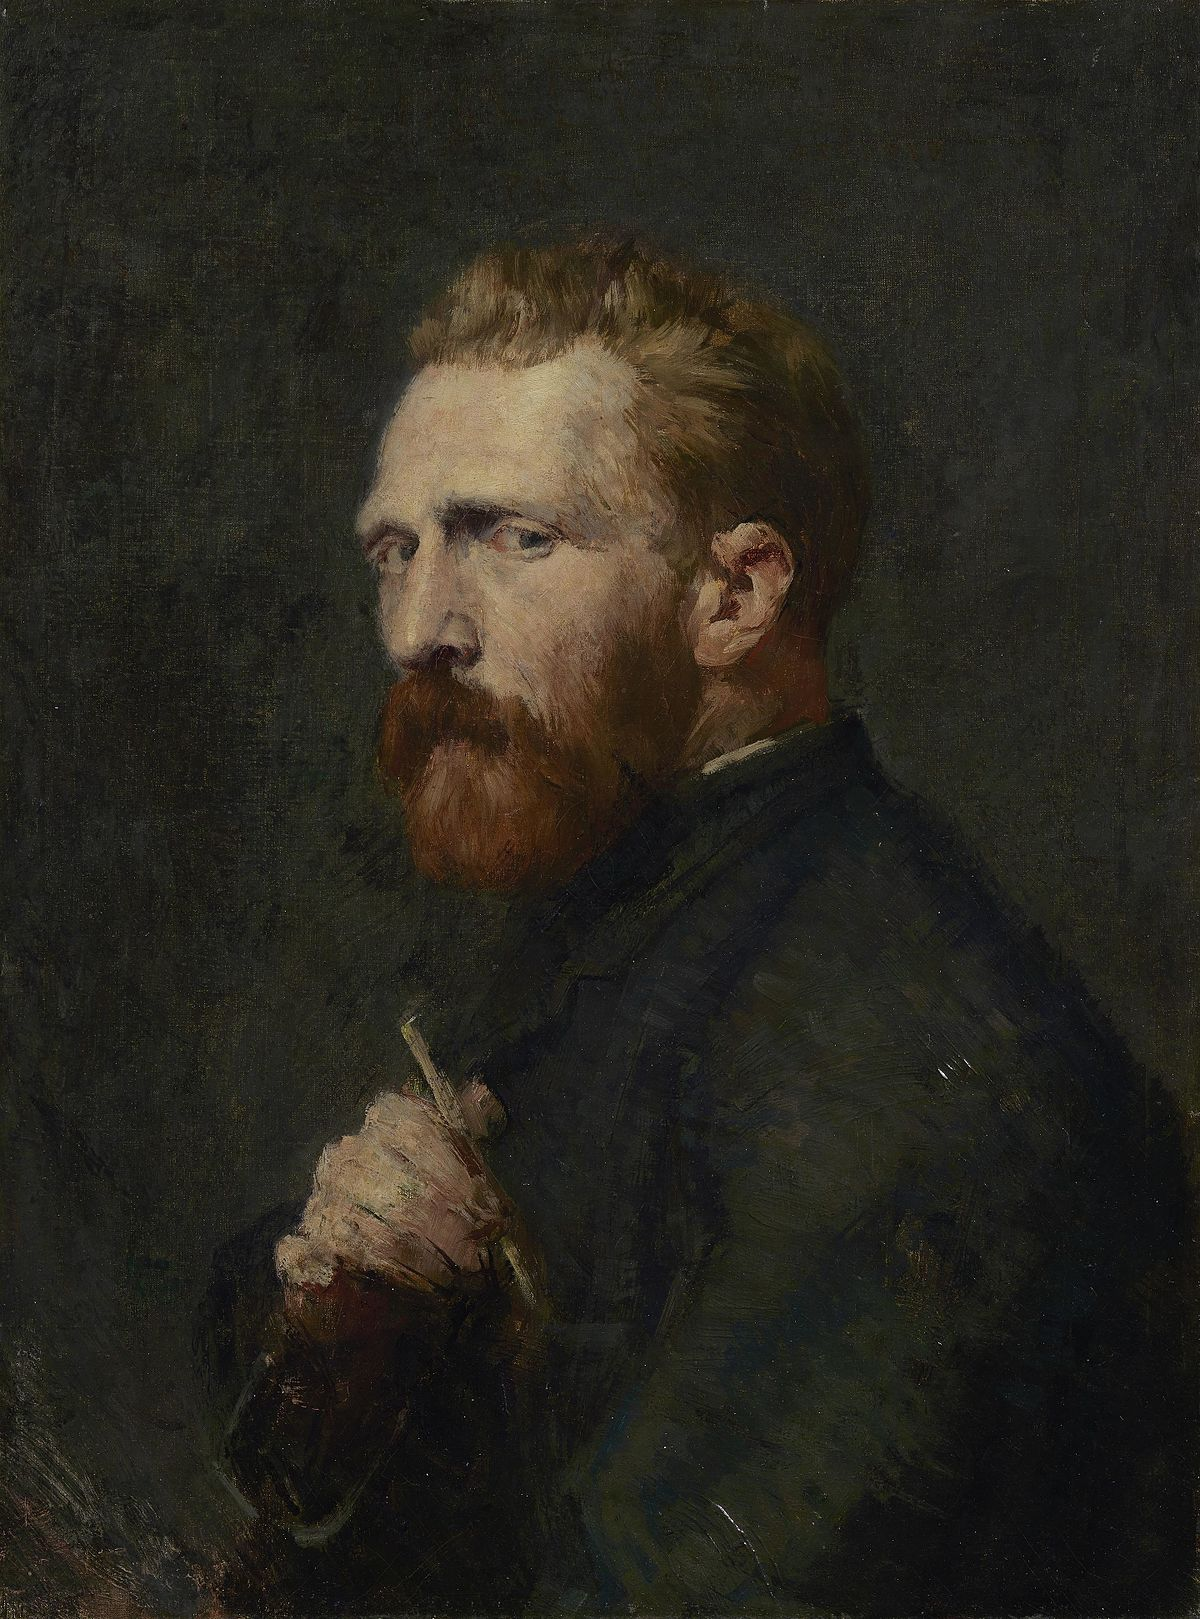 Vincent van Gogh (Russell painting) - Wikipedia